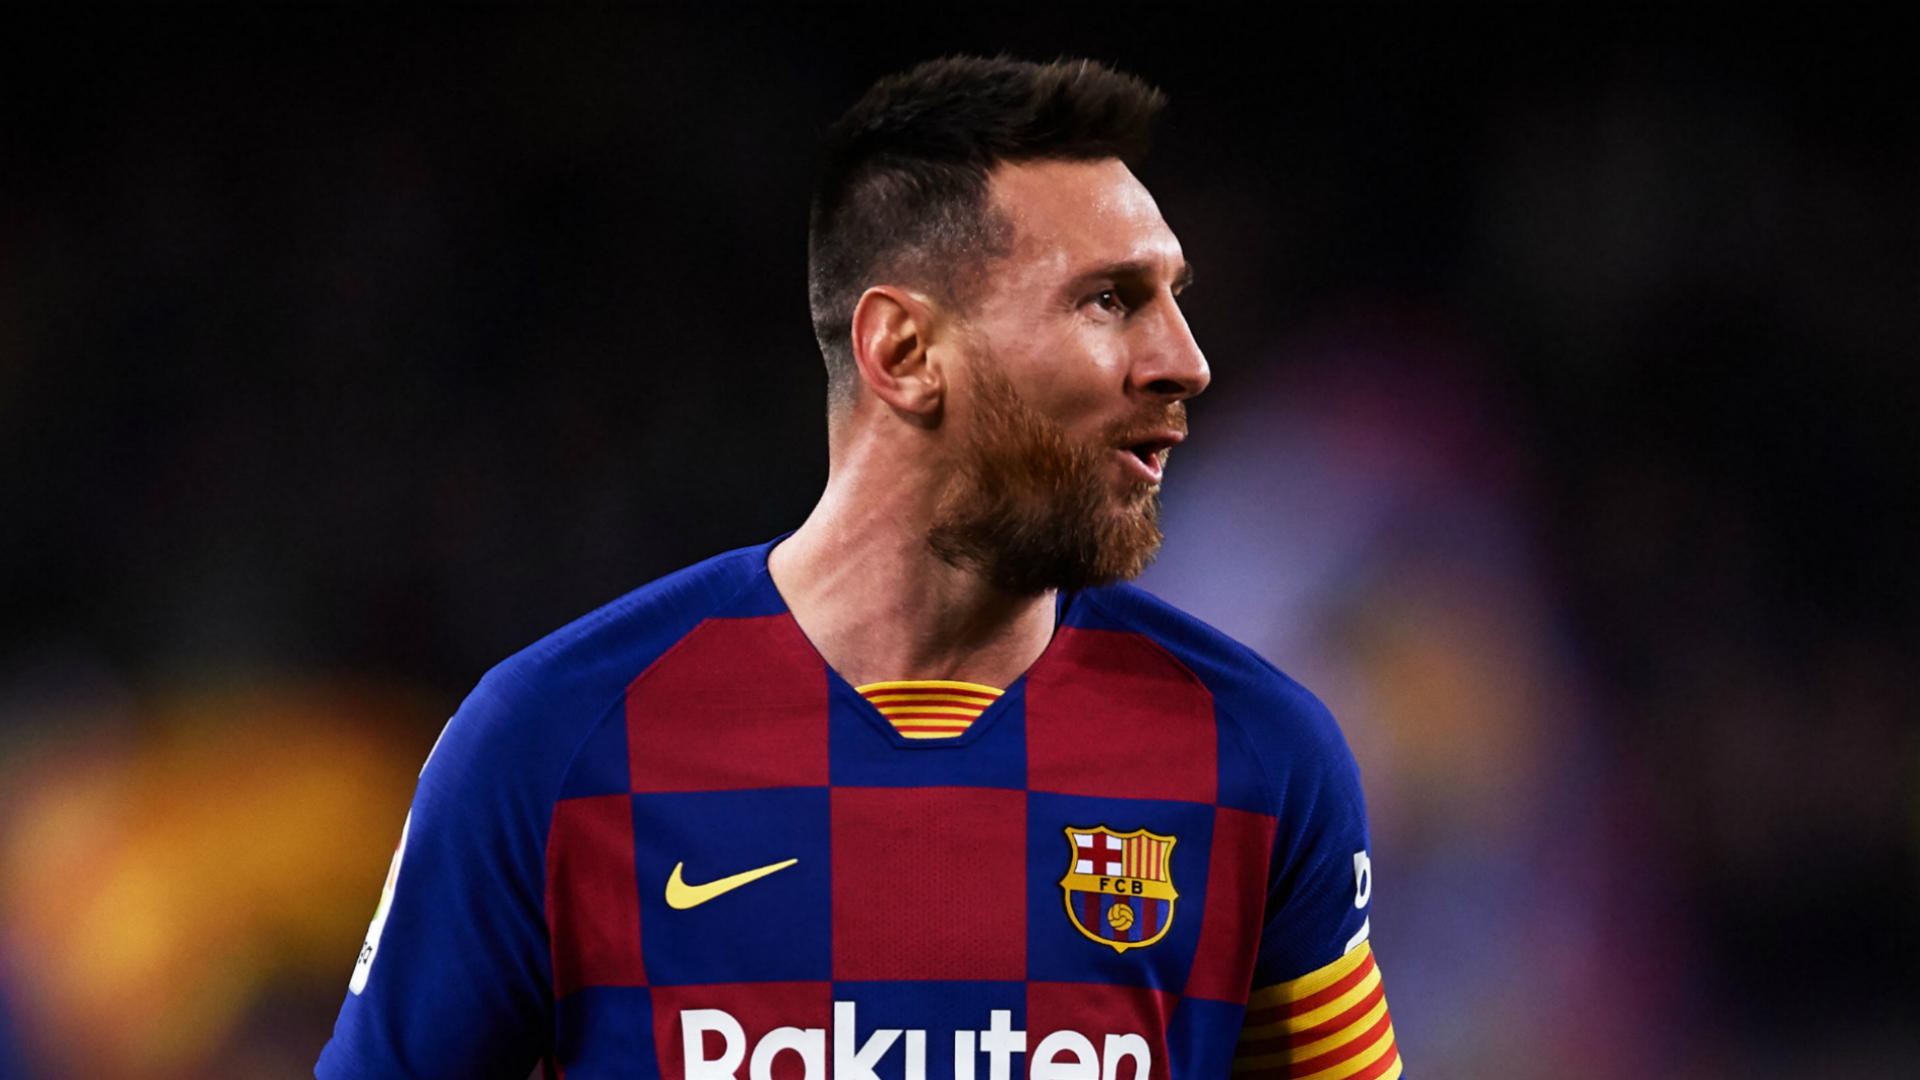 It's impossible not to depend on Messi, says Barcelona coach Valverde